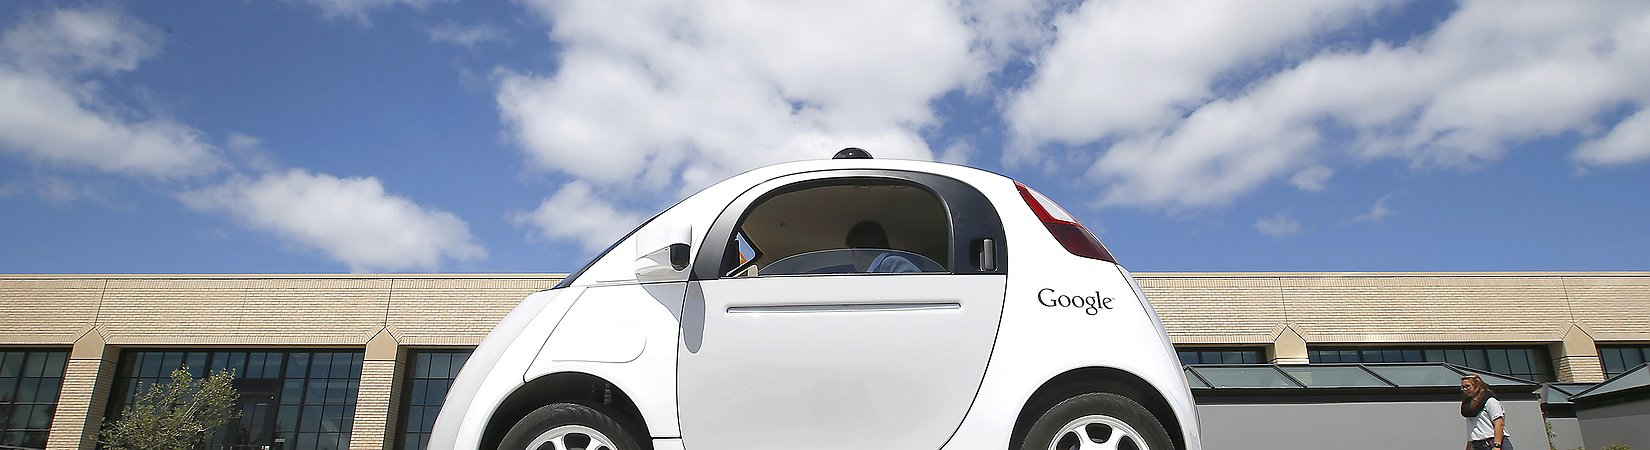 Report: Google will not develop its own self-driving car anymore